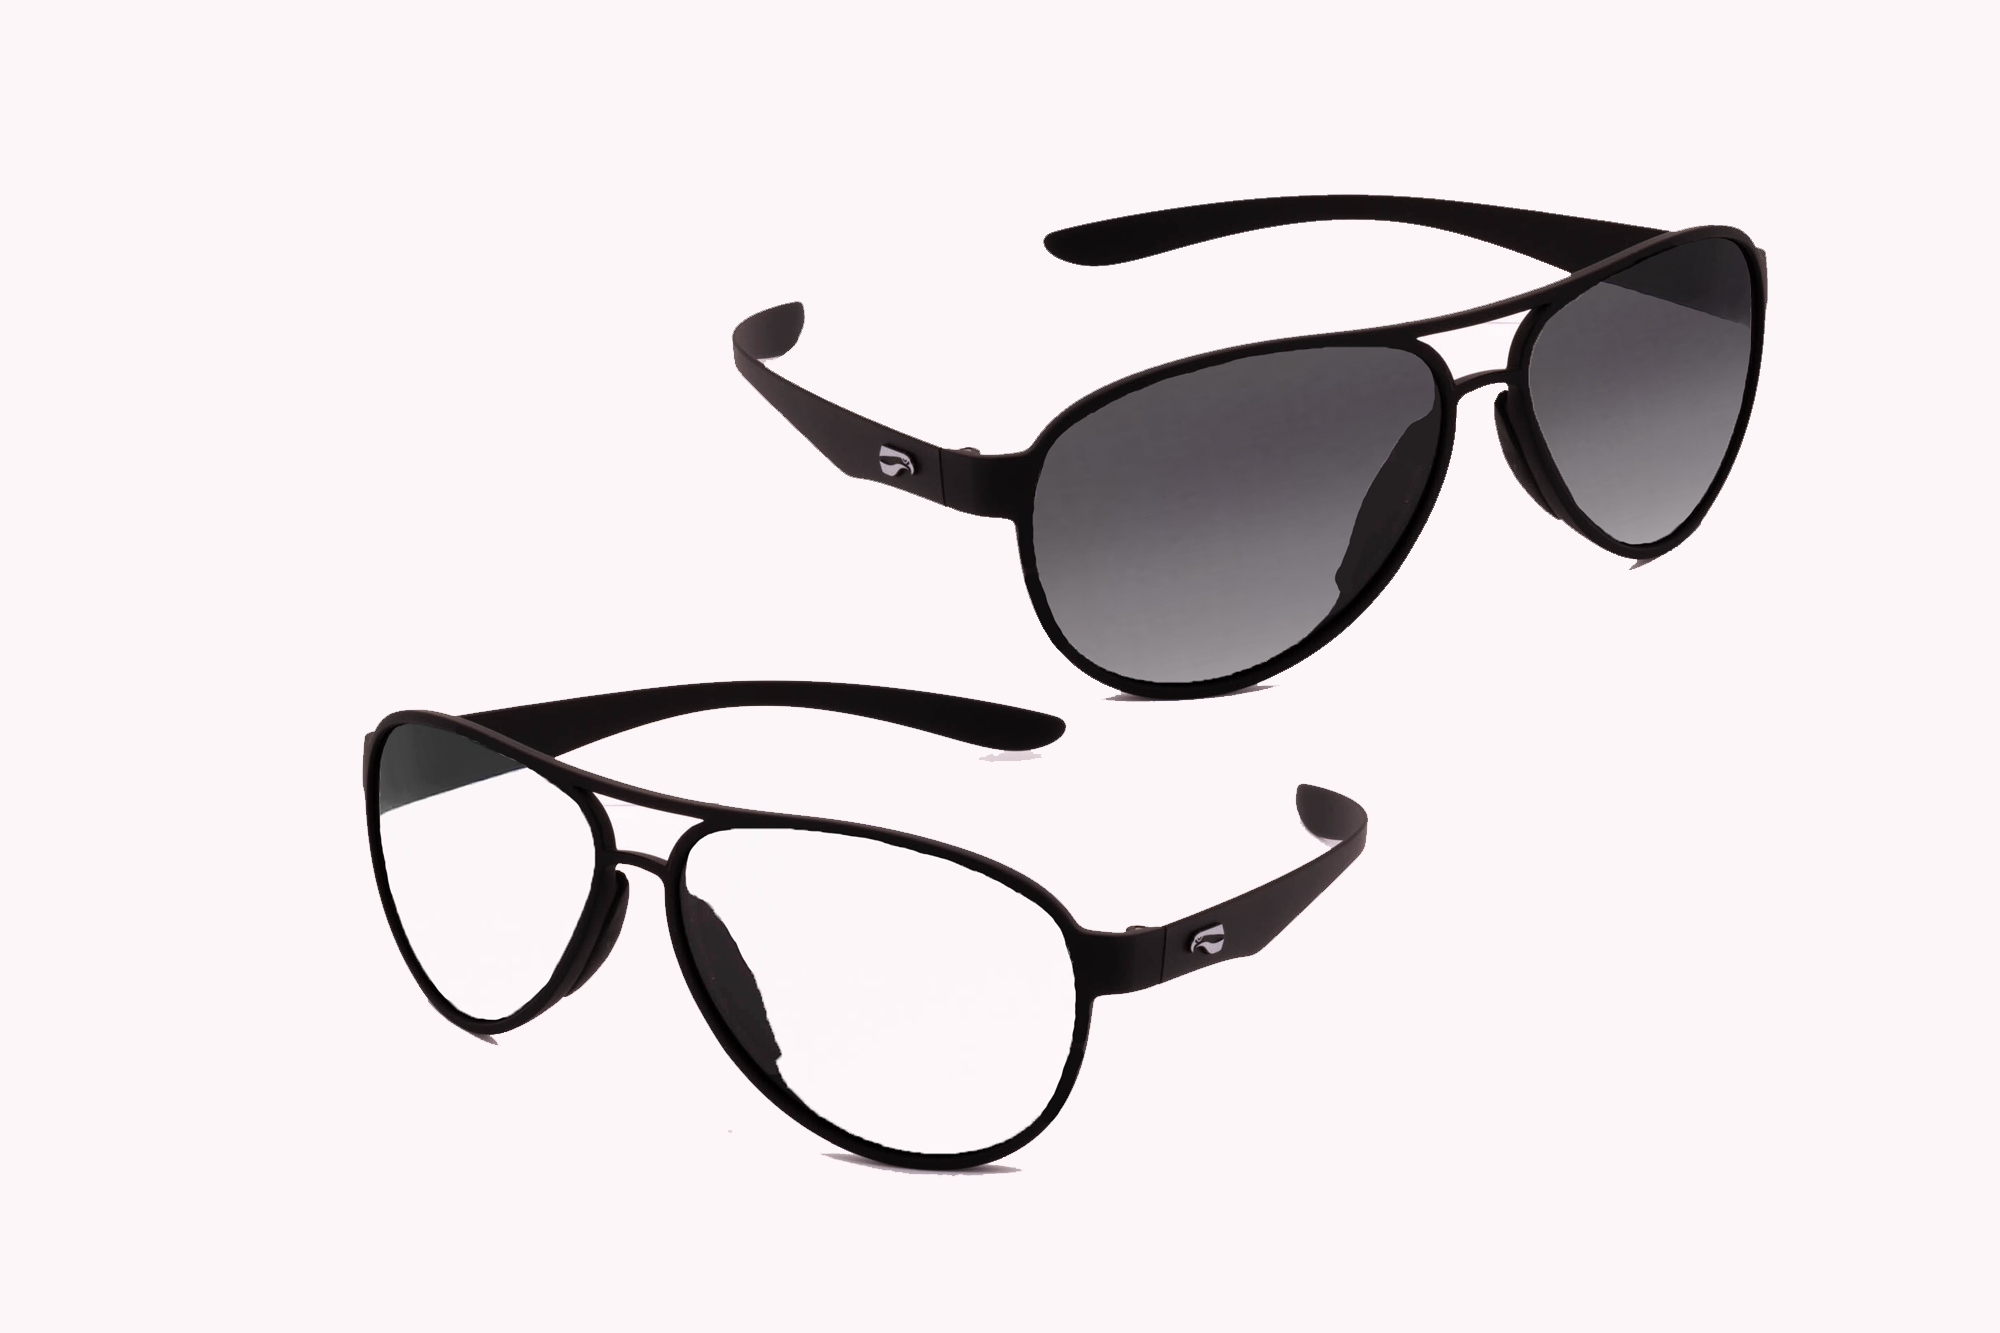 Kestrel Aviator Non-Rx Bifocal Bundle - Matte Black Frame with Gradient Gray and Clear Lenses